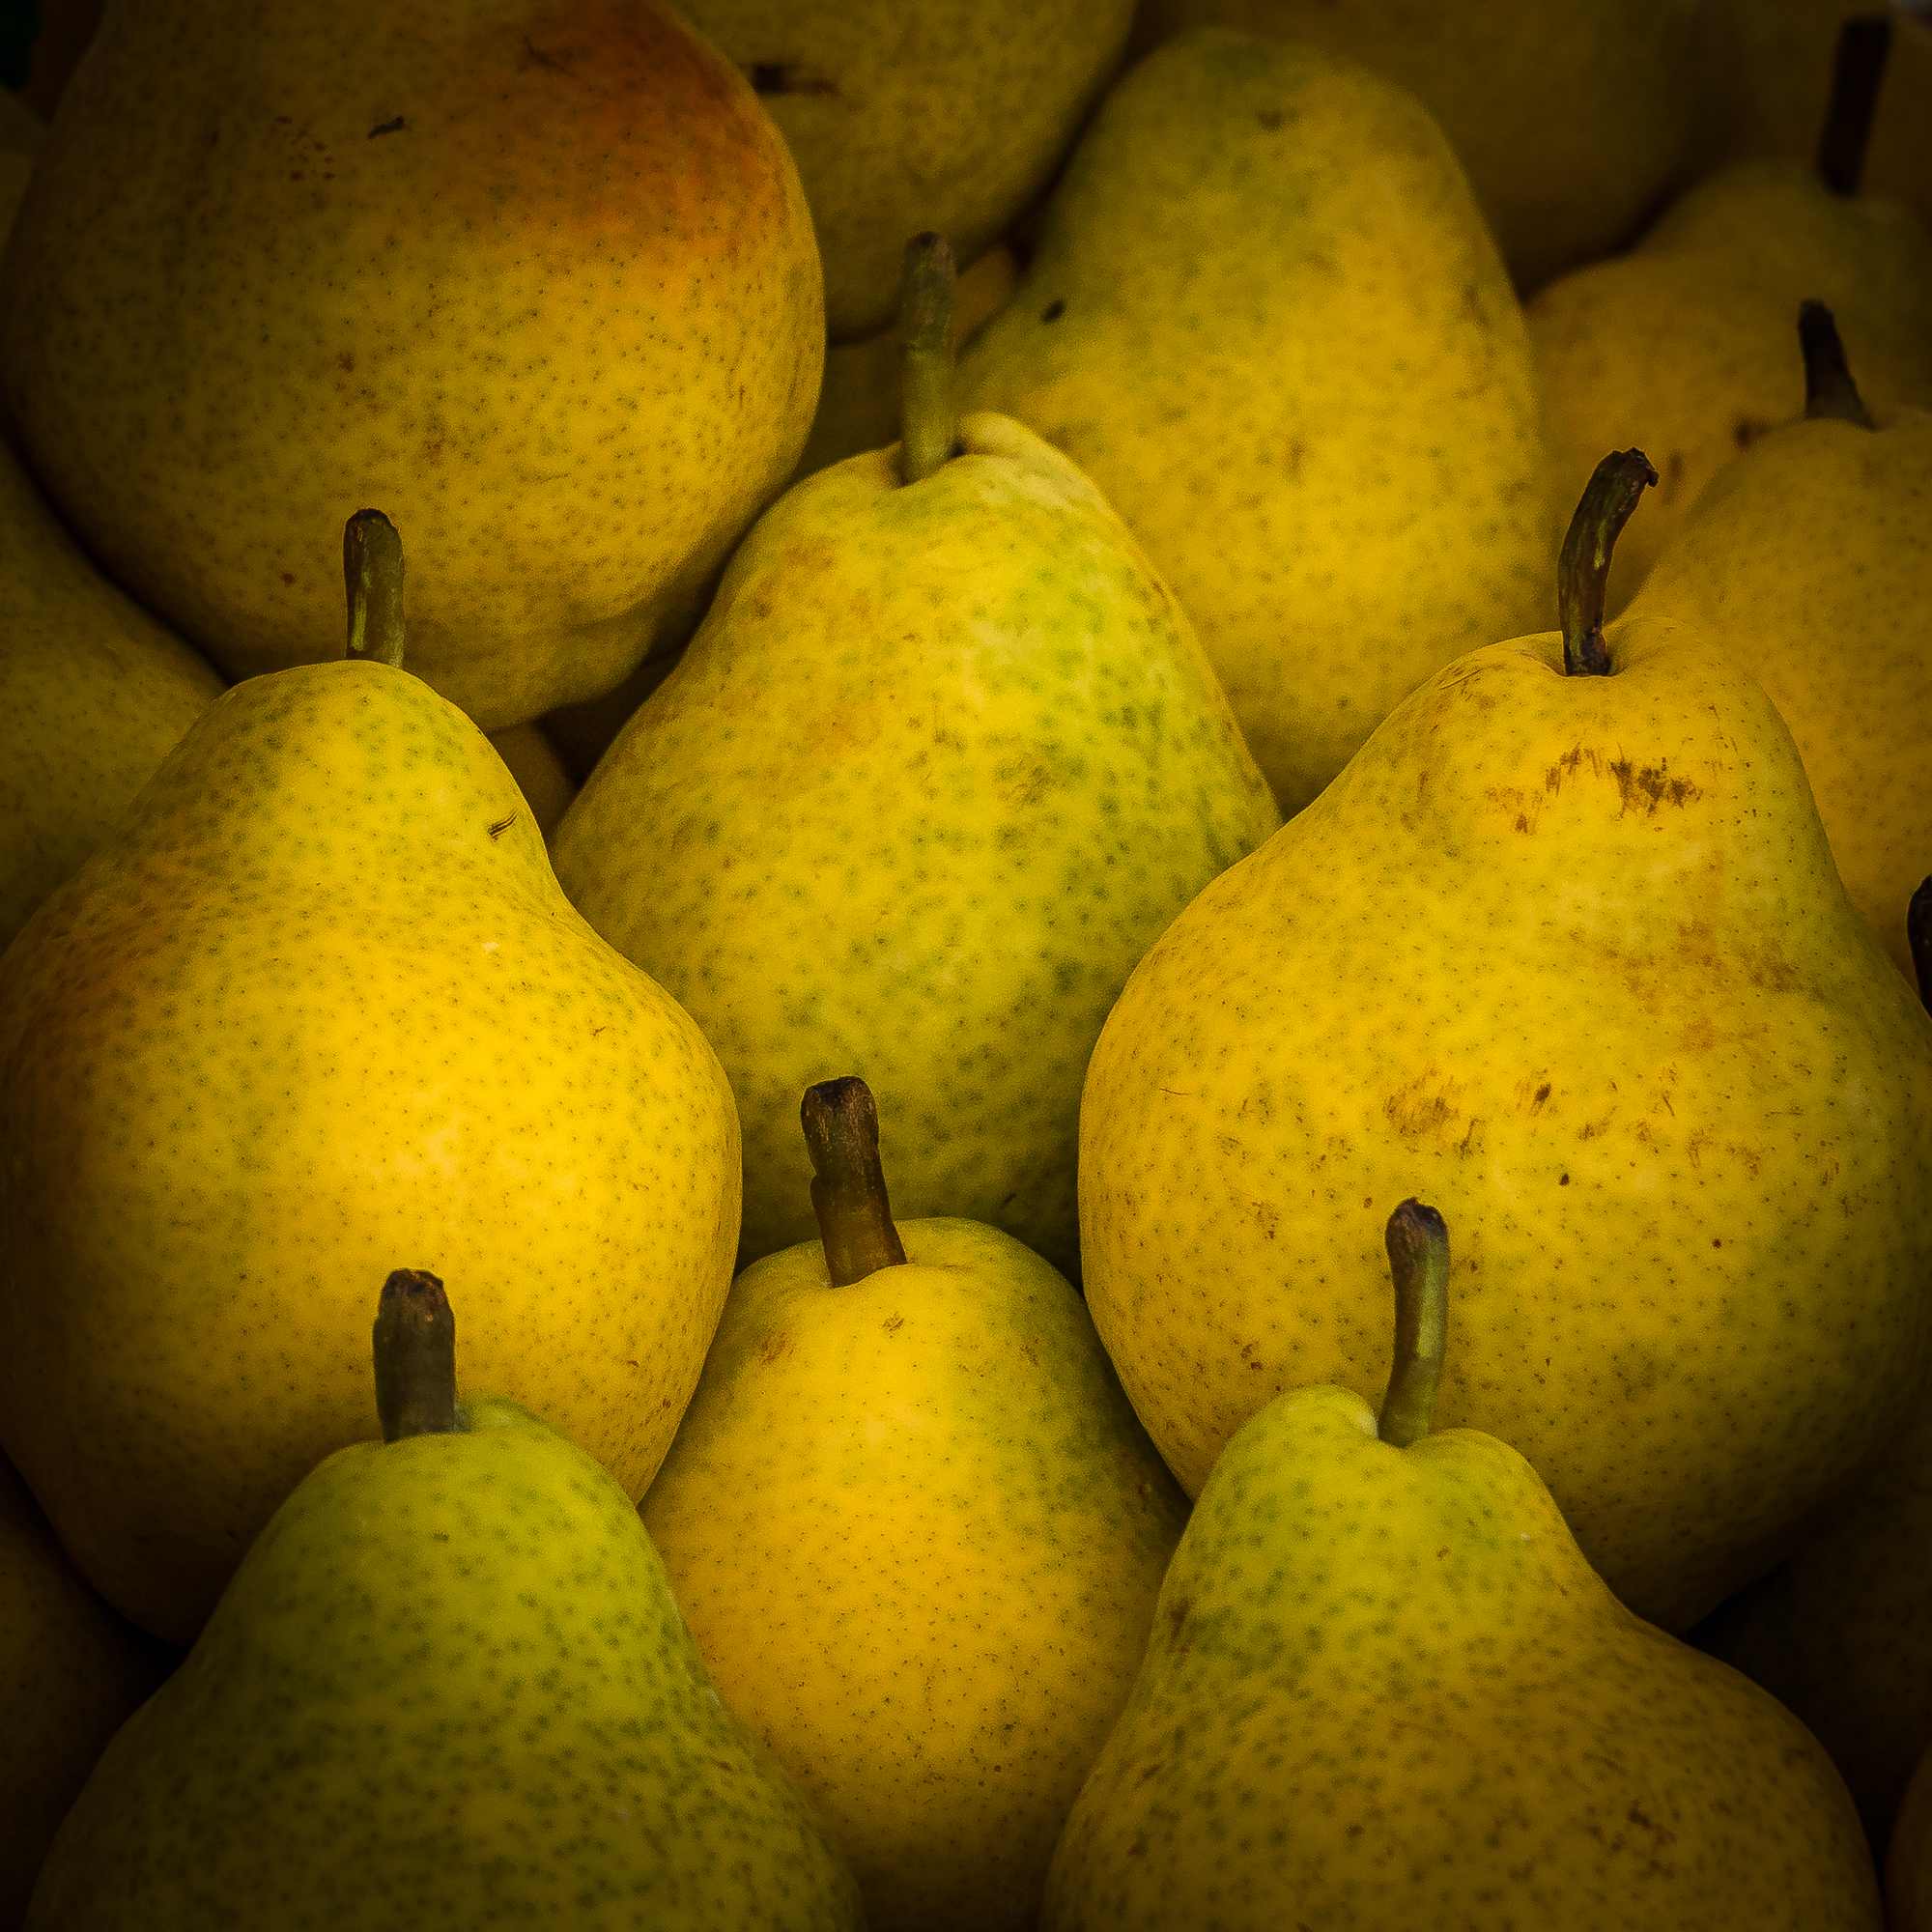 Rialto Market pears...and they're ripe